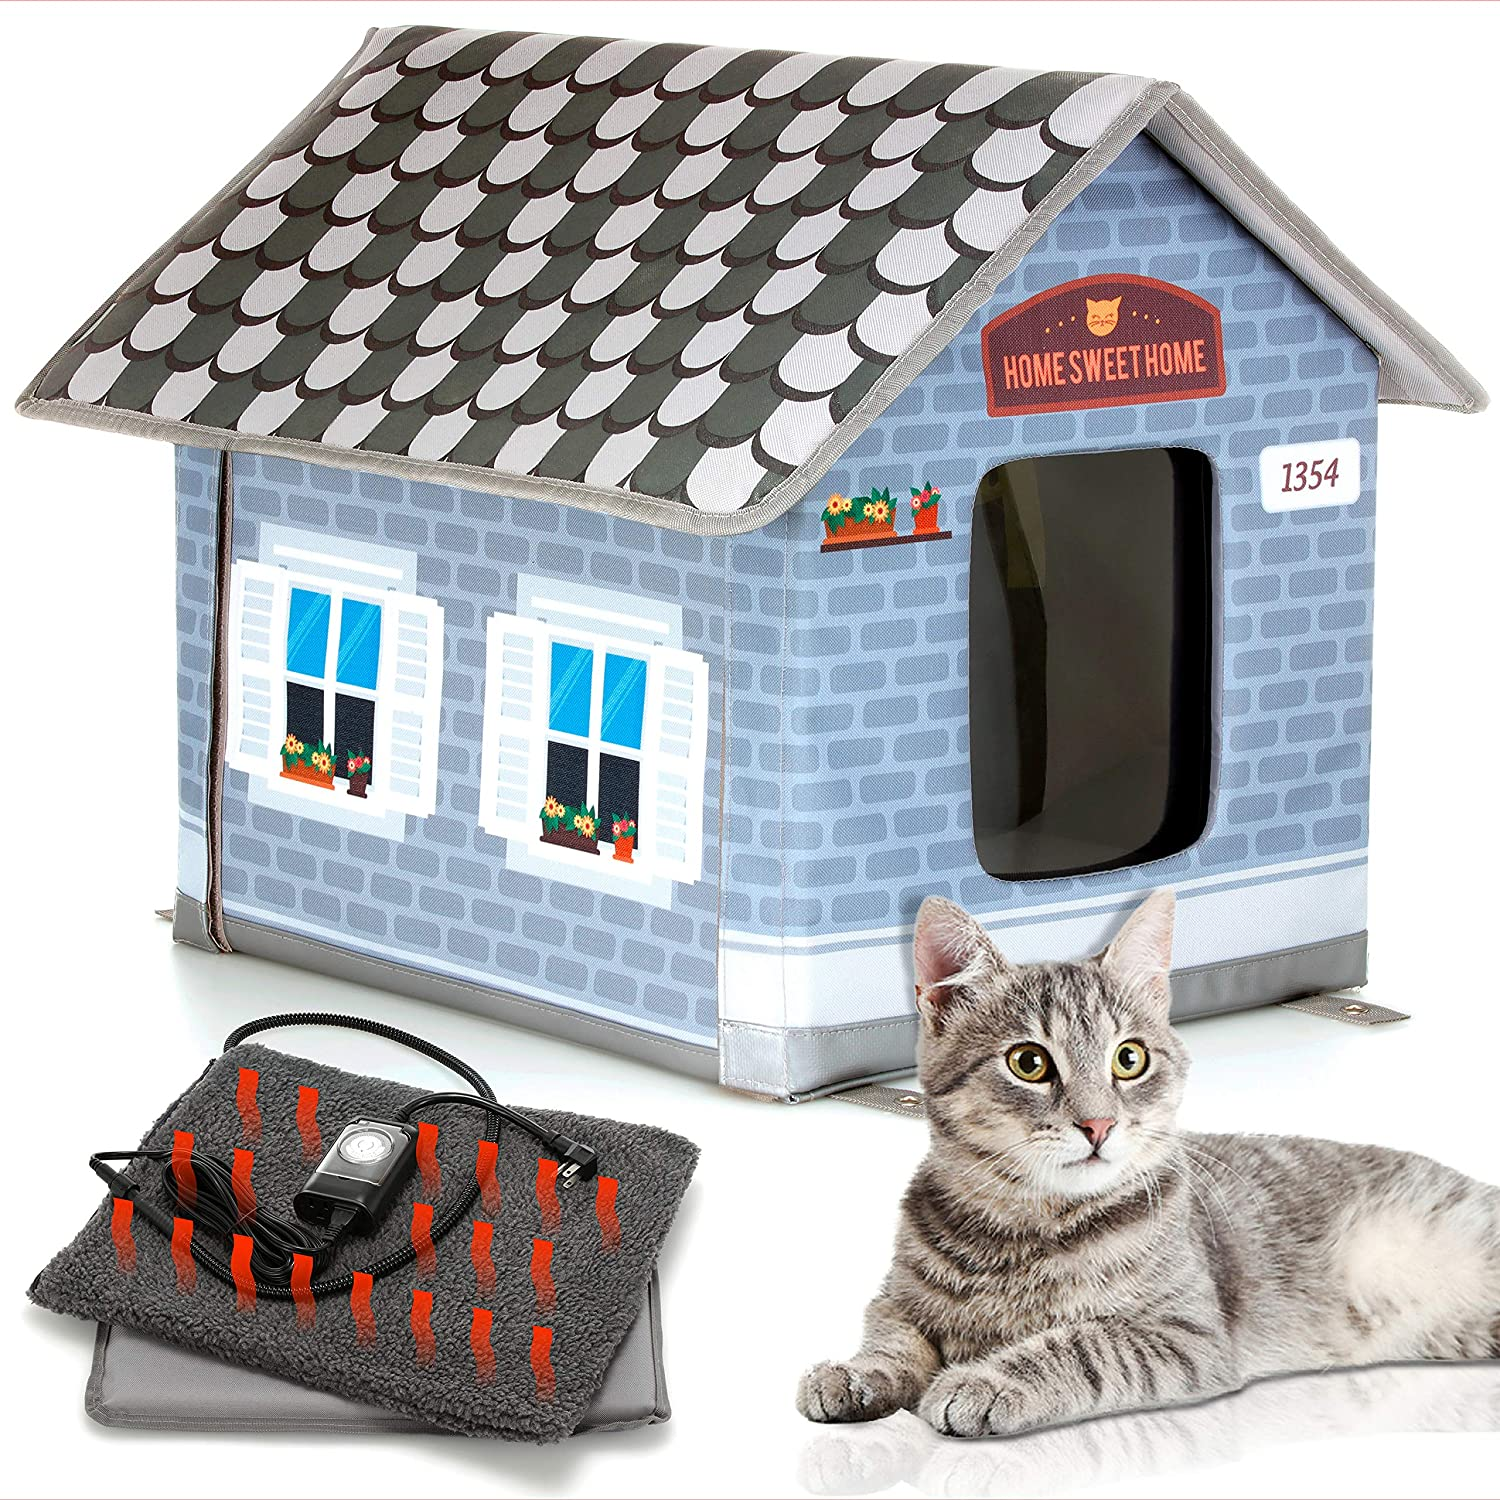 6. PETYELLA Heated Cat House for Outdoor Cats